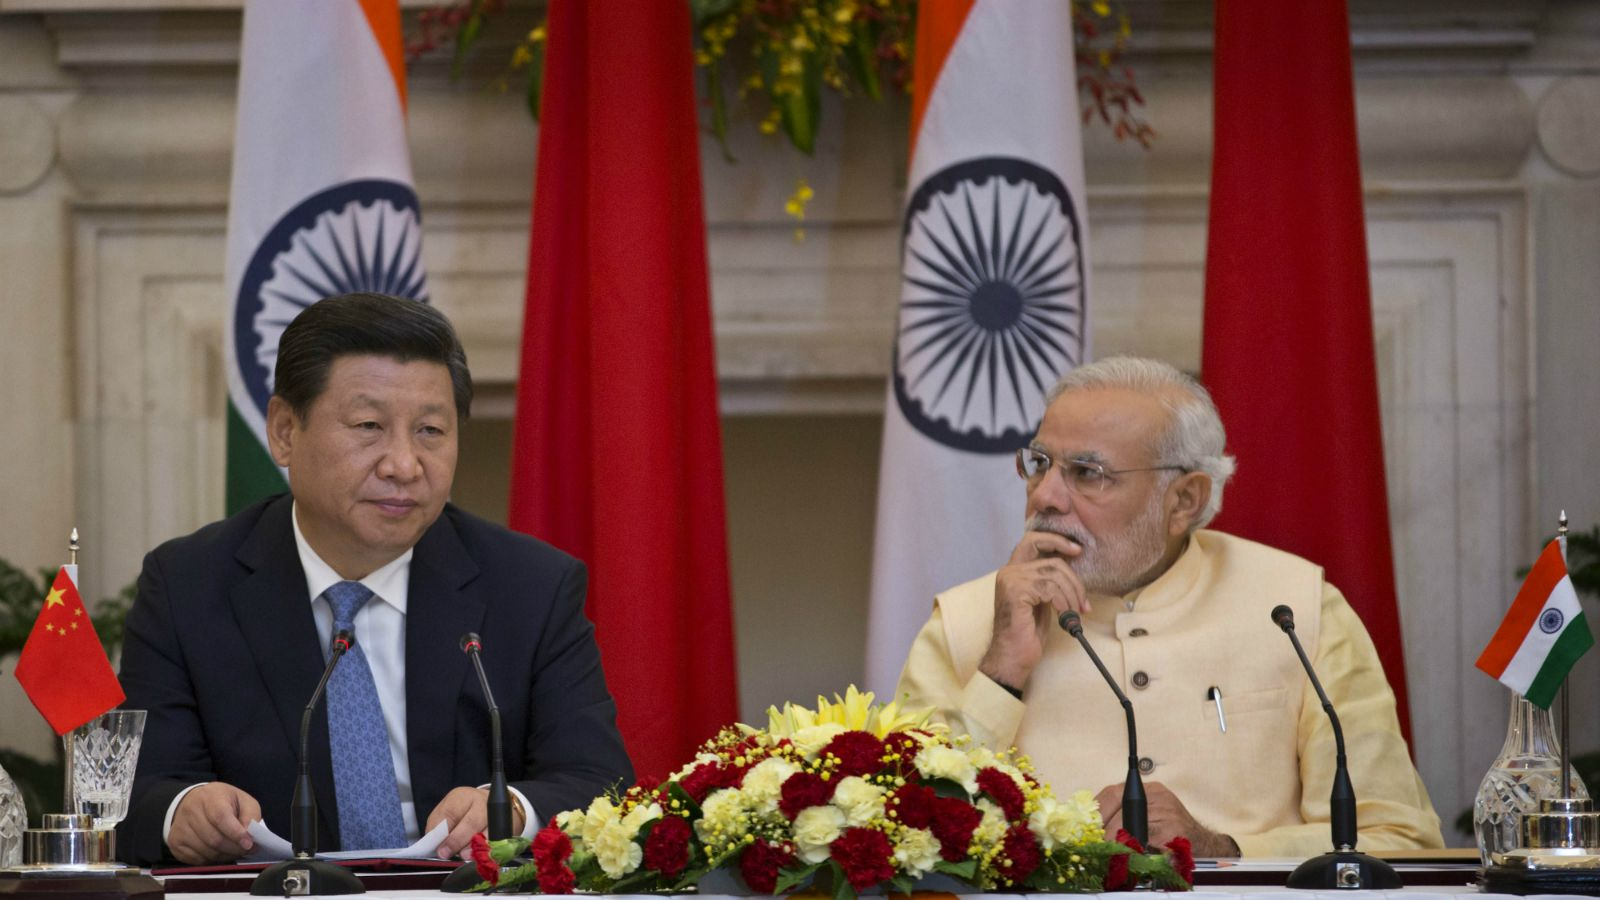 Chinese President Xi Jinping makes a statement before the media as Indian Prime Minister Narendra Modi, right watches after signing agreements in New Delhi, India, Thursday, Sept. 18, 2014. Xi vowed to bring prosperity to Asia and create opportunities for the world as he and Modi began talks Thursday to deepen cooperation through investment and trade.